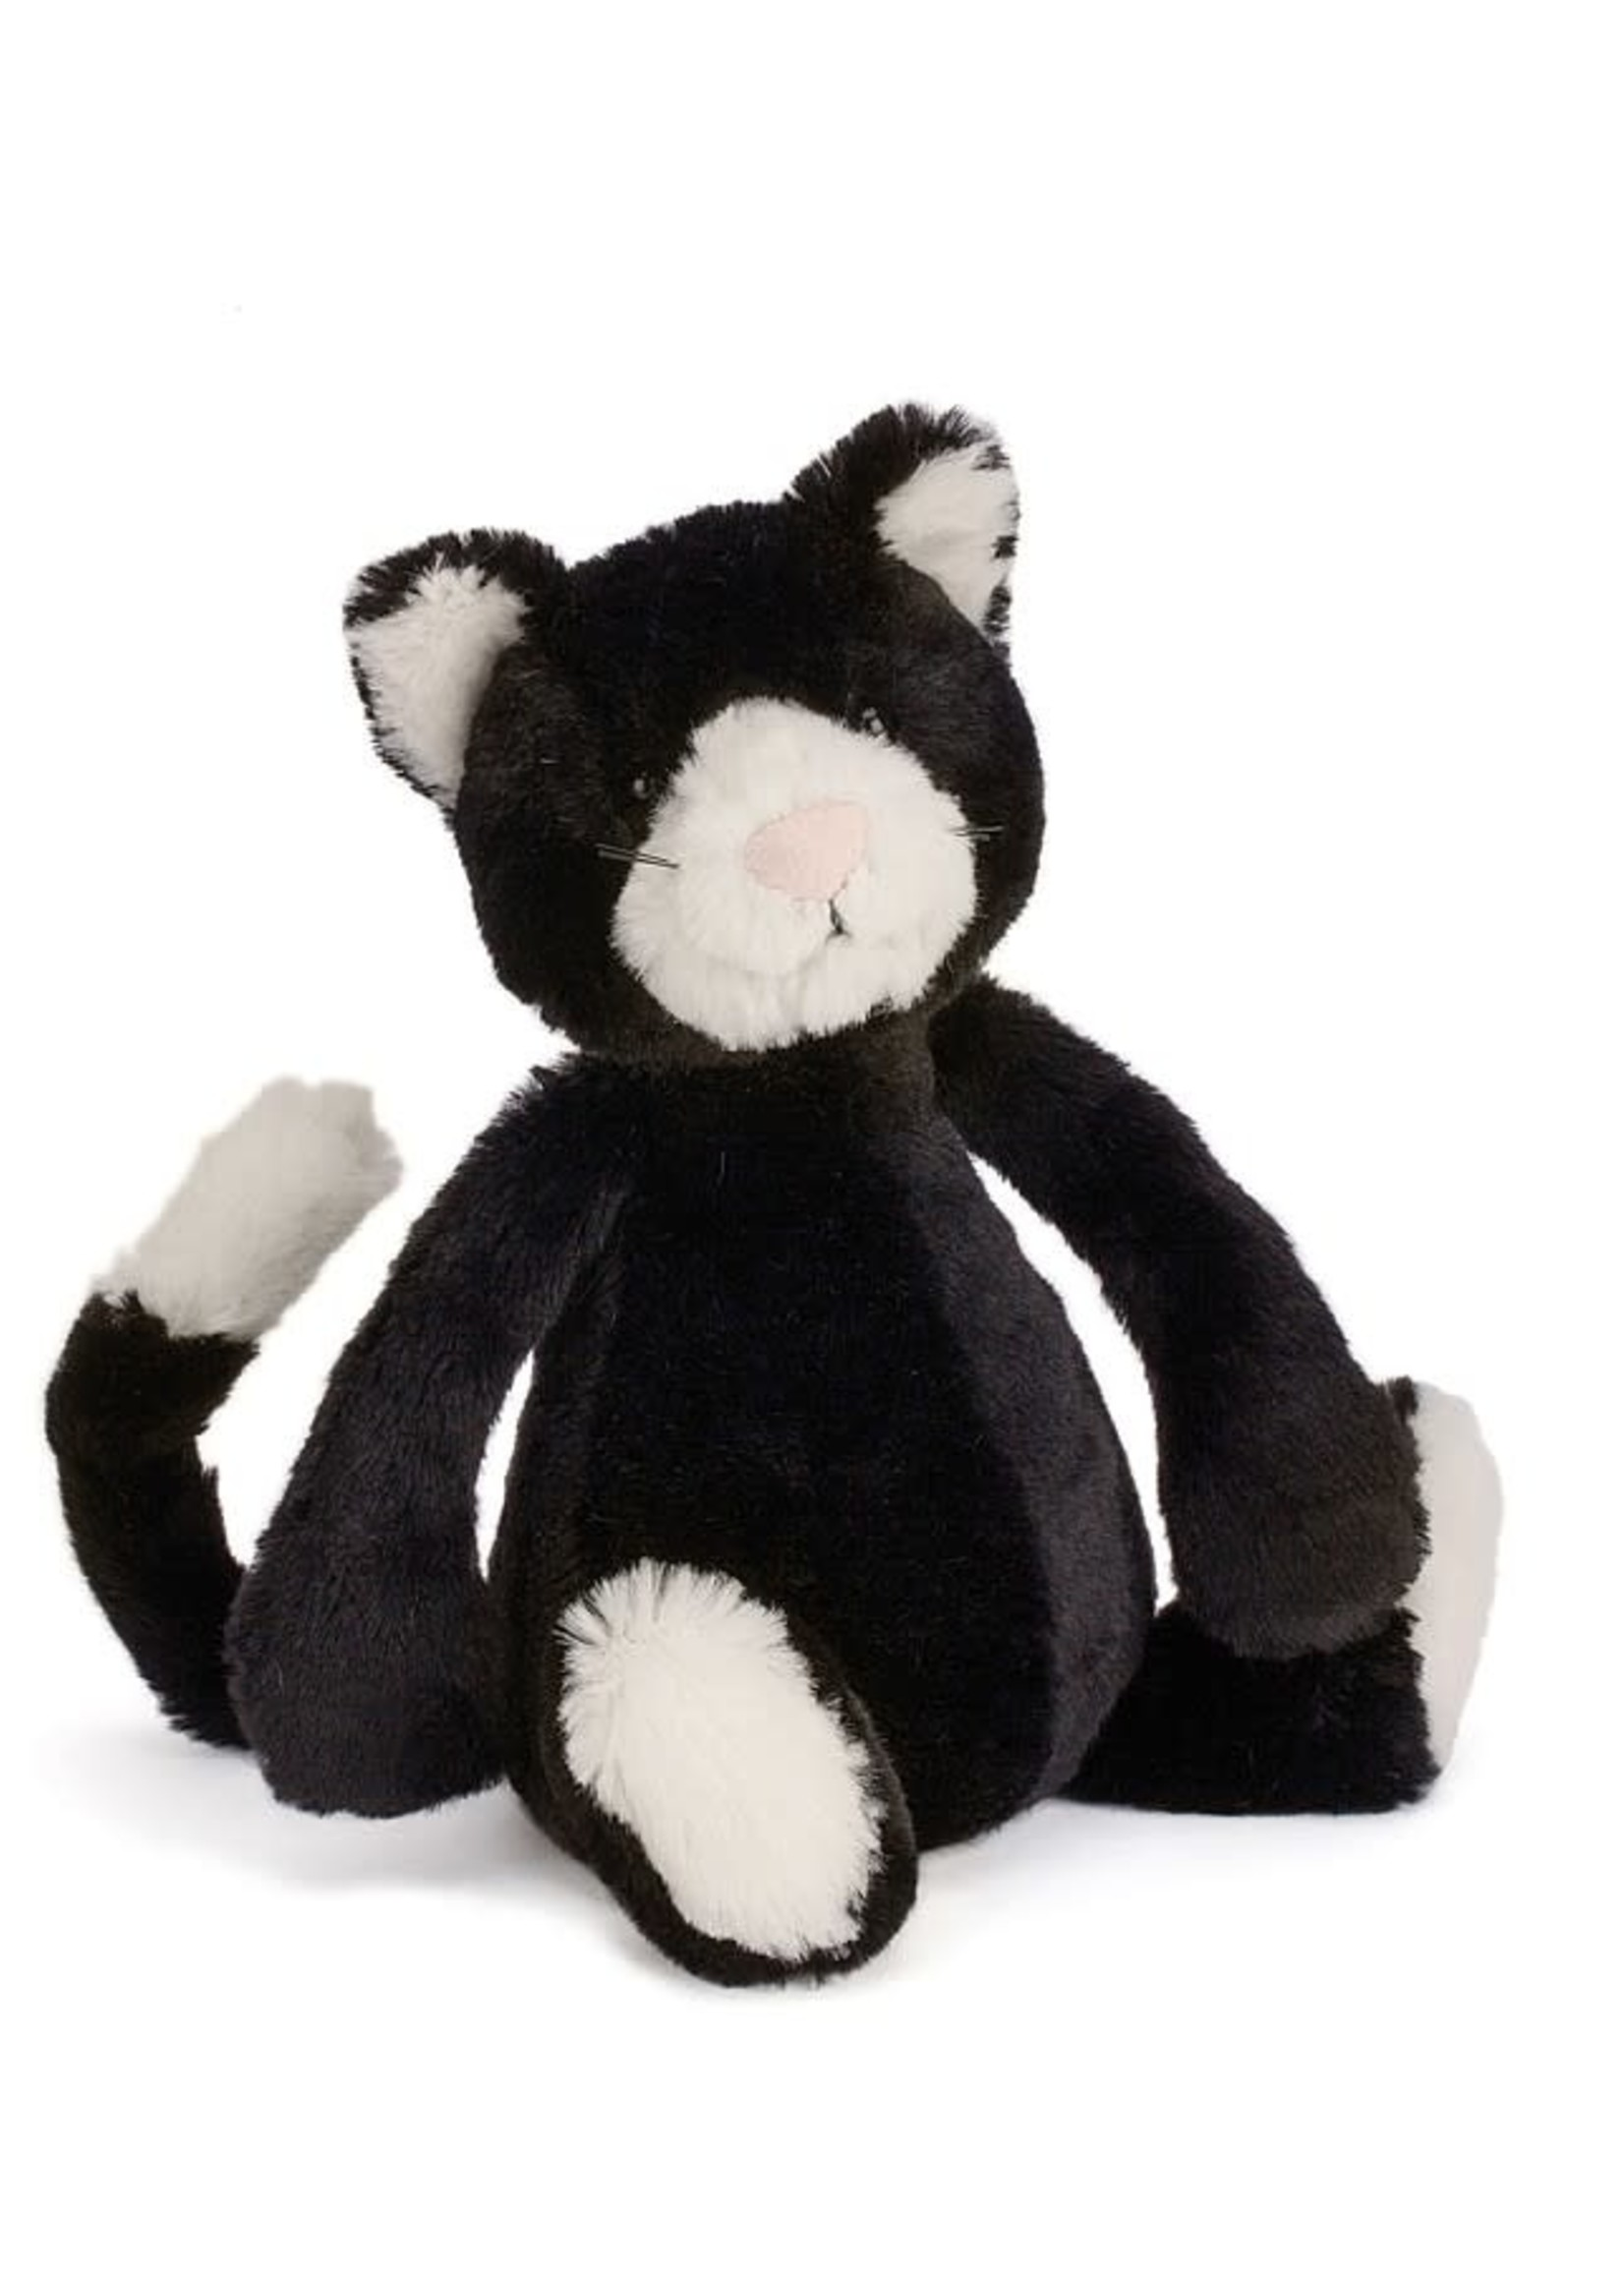 JELLYCAT JELLYCAT BASHFUL BLACK & WHITE CAT